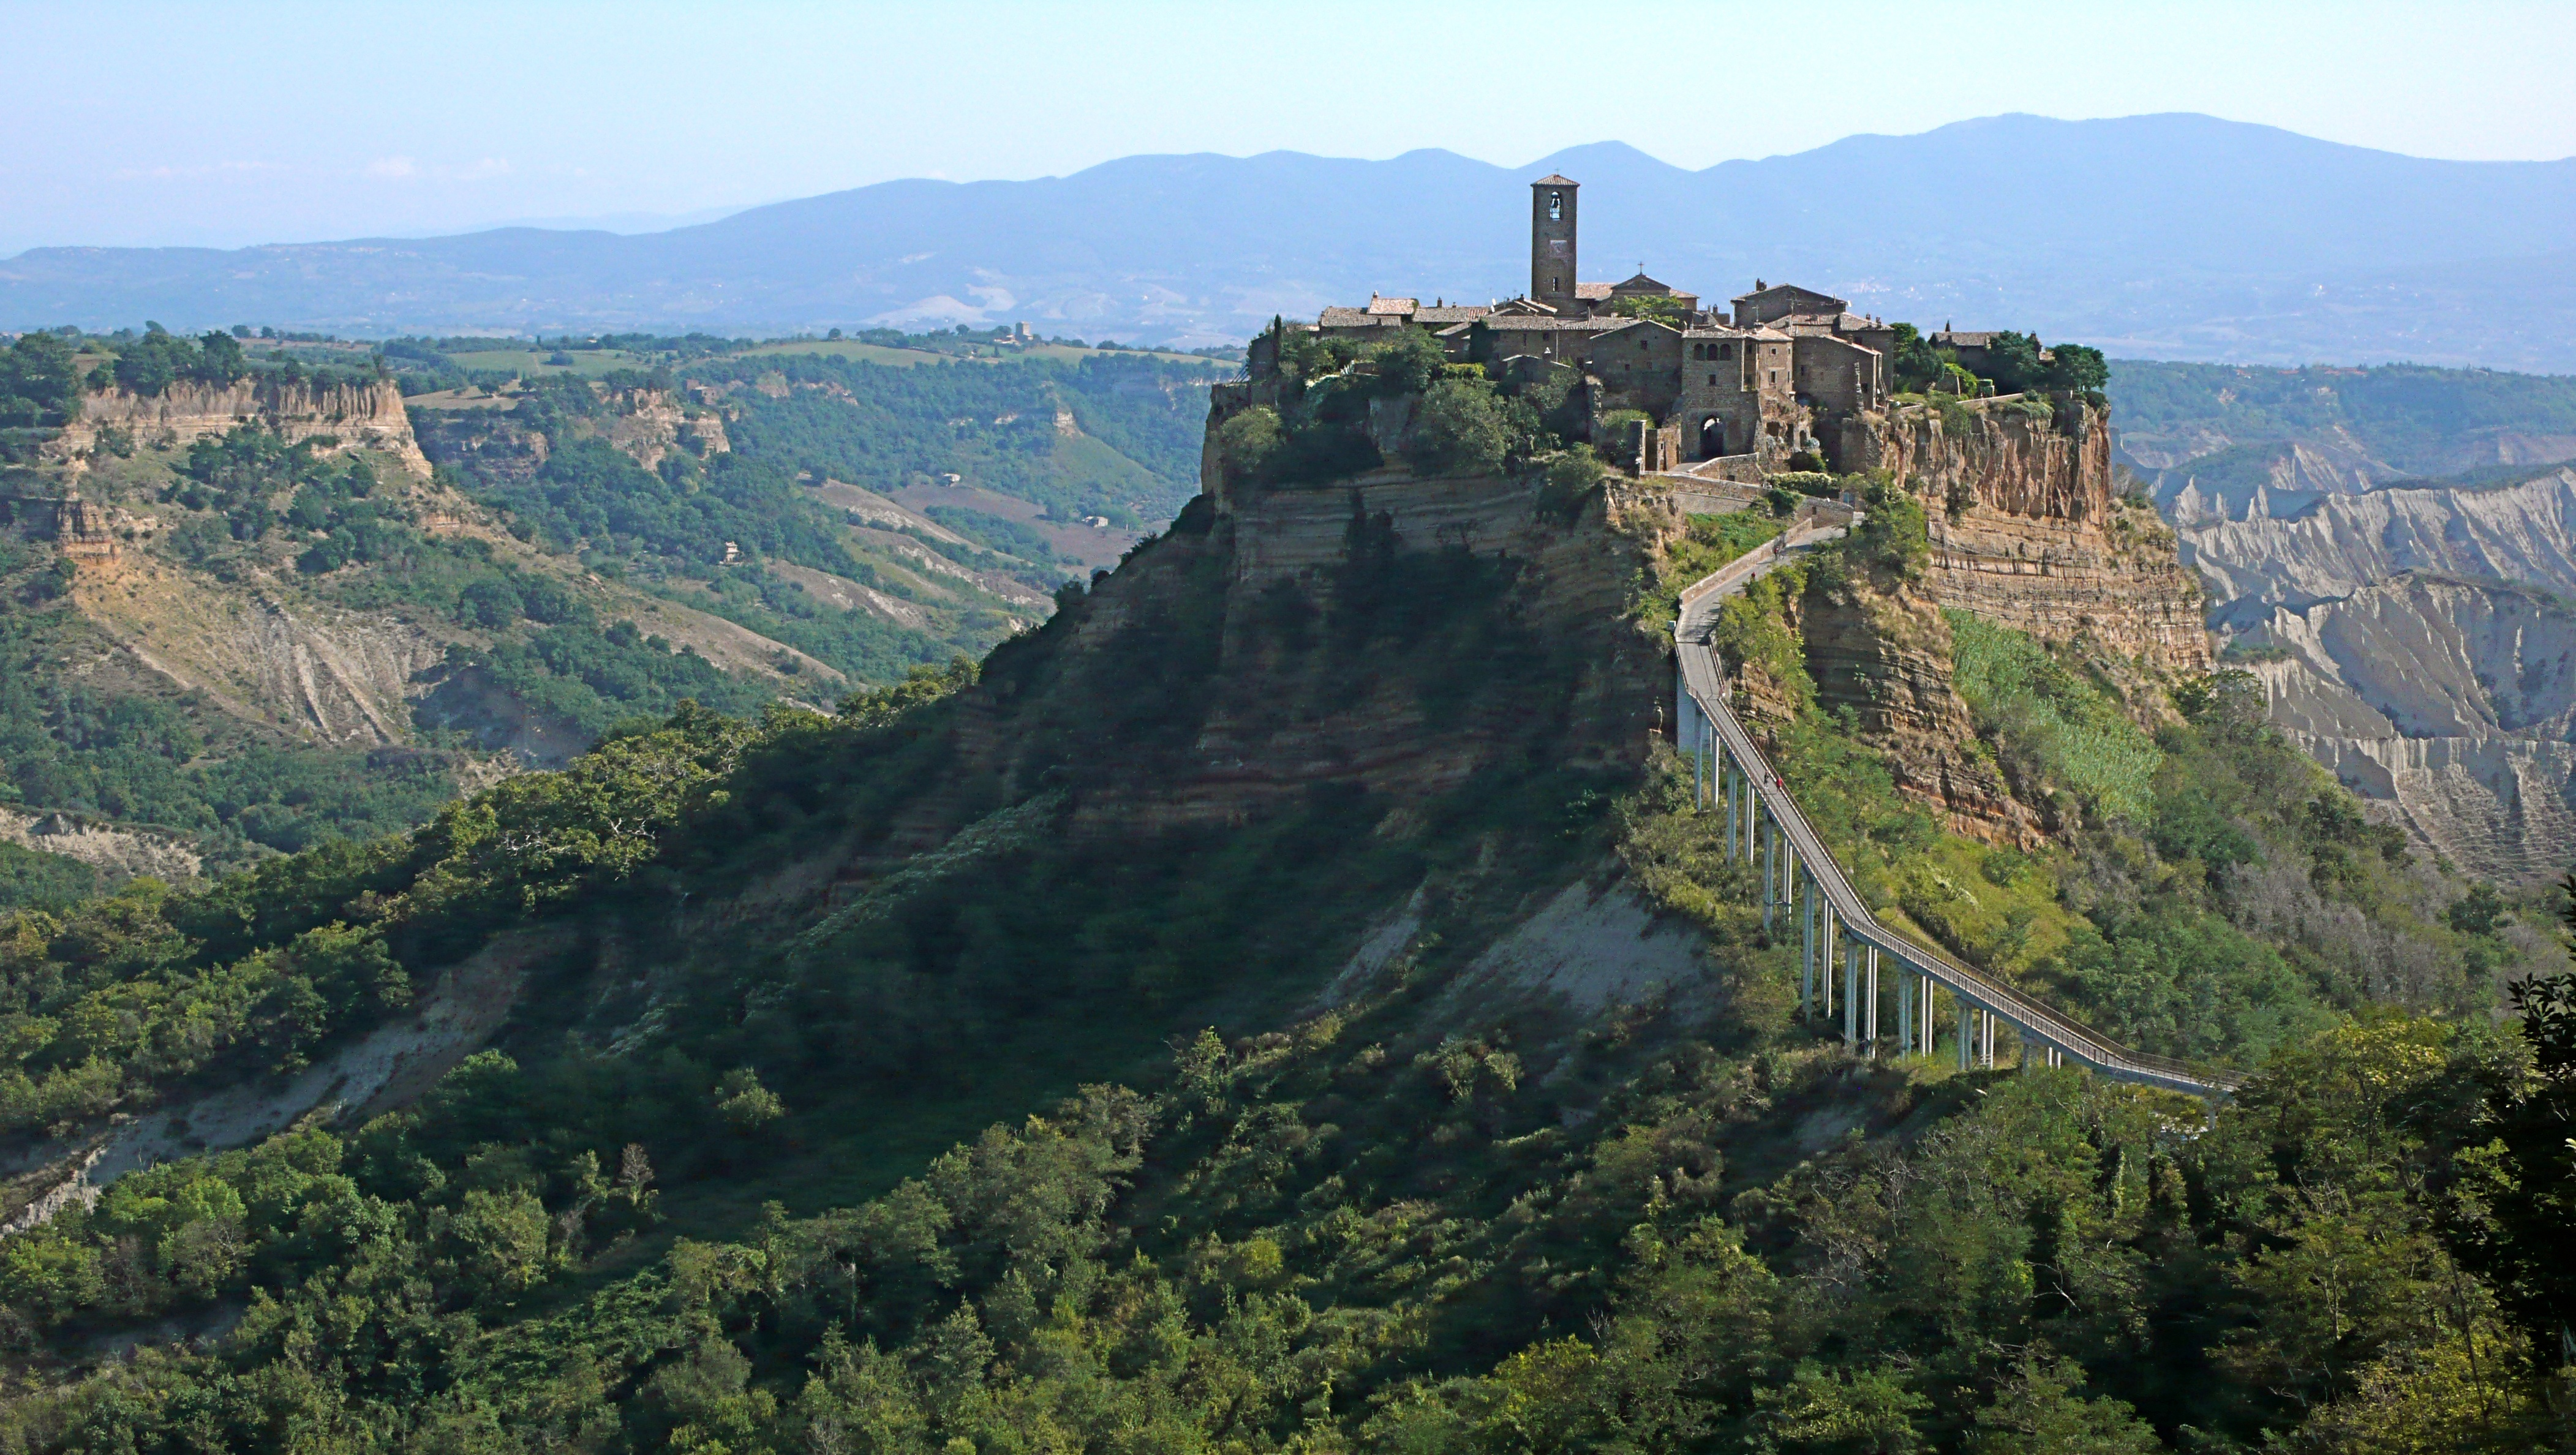 A distant photograph of Civita di Bagnoregio in Italy.